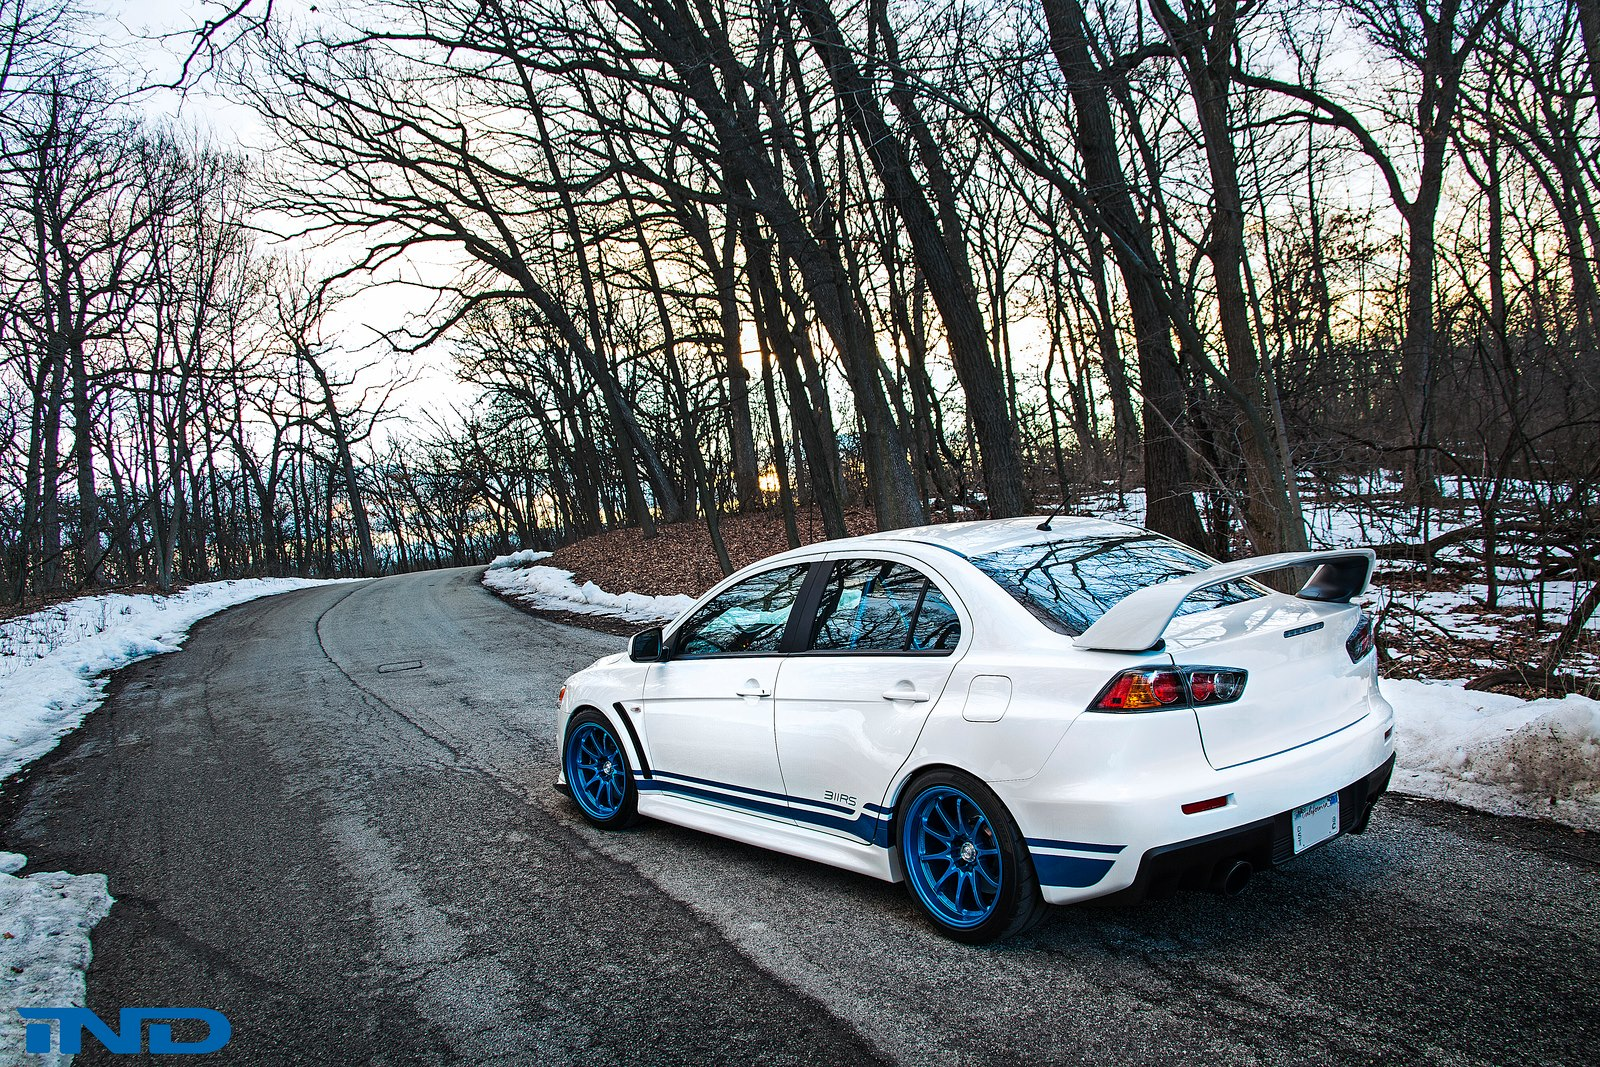 http://www.automobilesreview.com/img/ind-mitsubishi-evo-x-311rs/ind-mitsubishi-evo-x-311rs-07.jpg